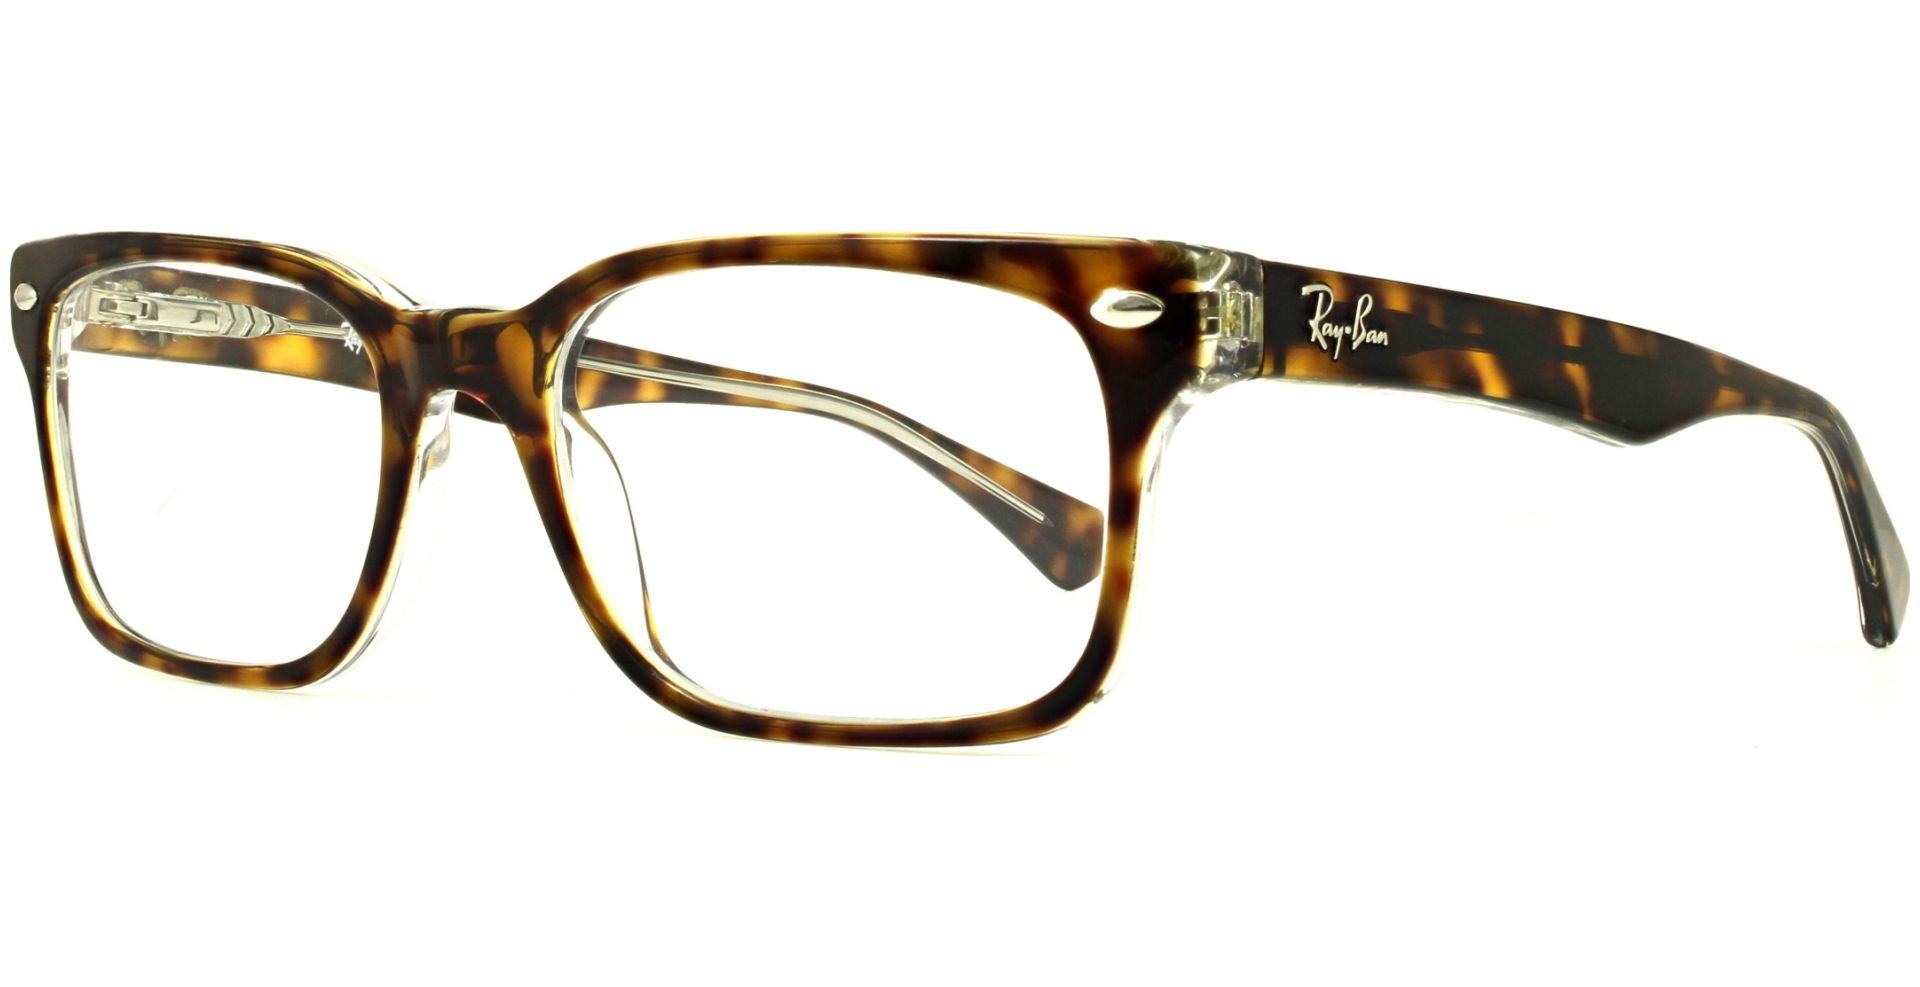 8f05490cbcd Eyeglasses Ray Ban Rx5286 5082 – Southern California Weather Force